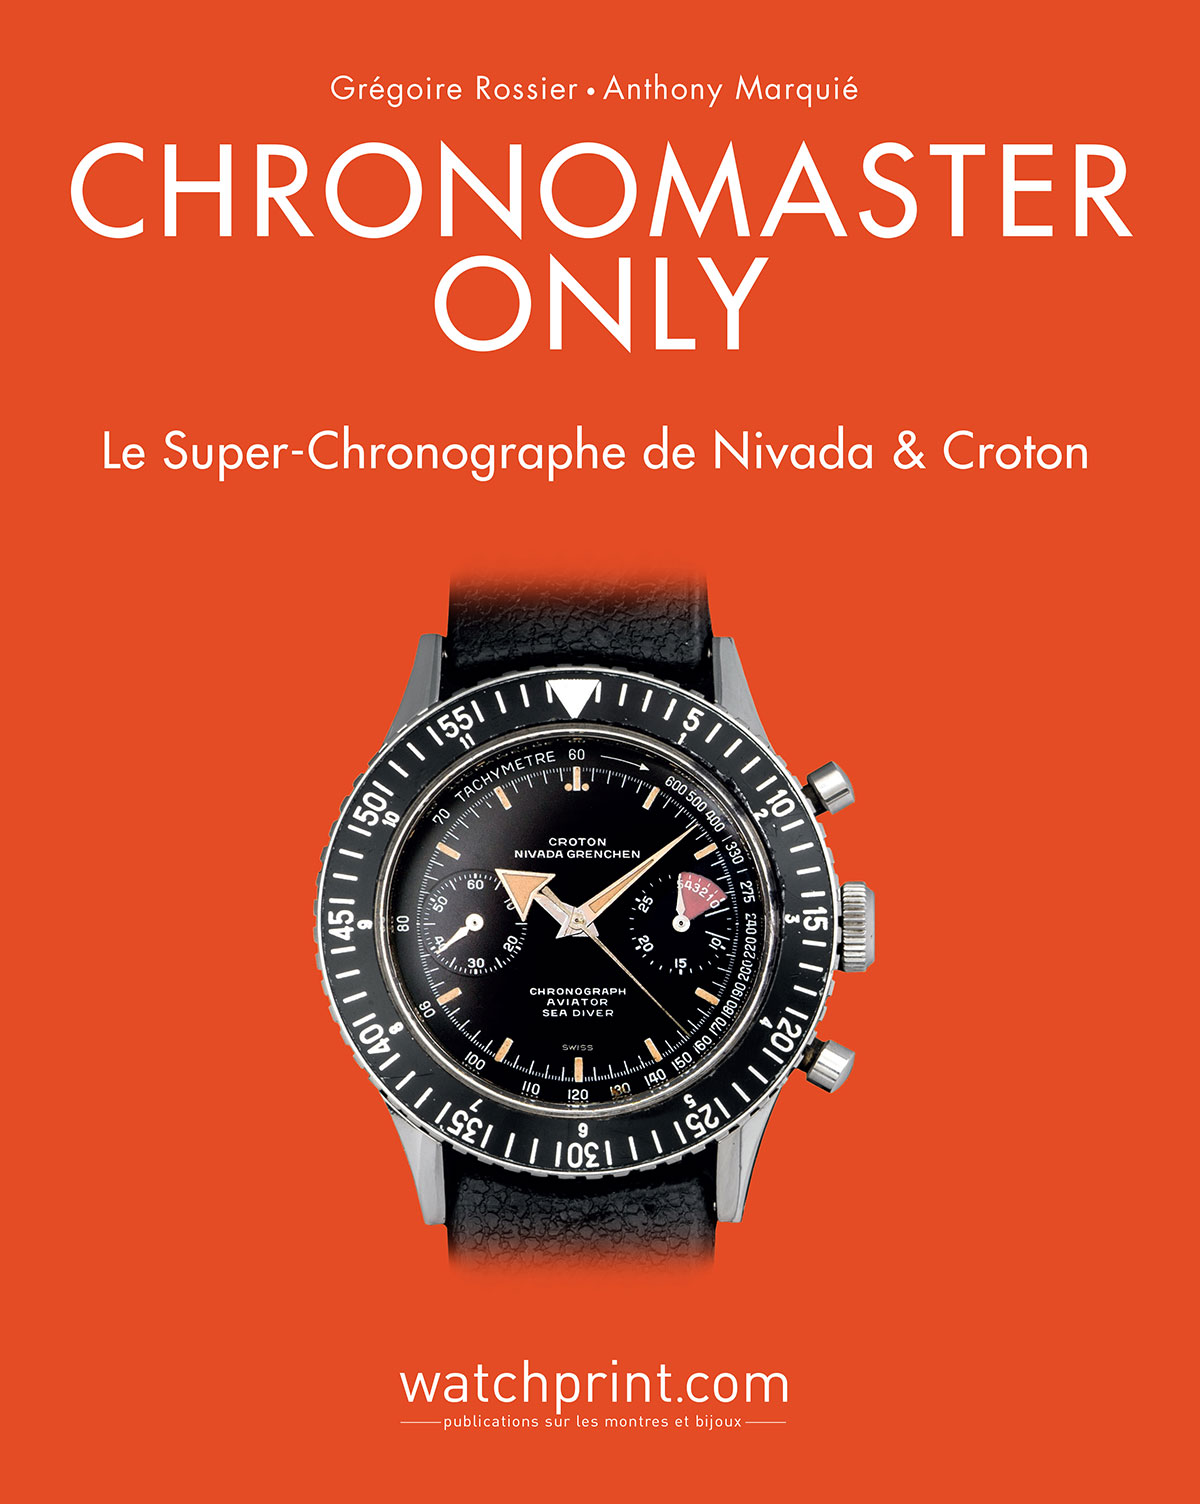 chronomaster-only-aviator-sea-diver-cover